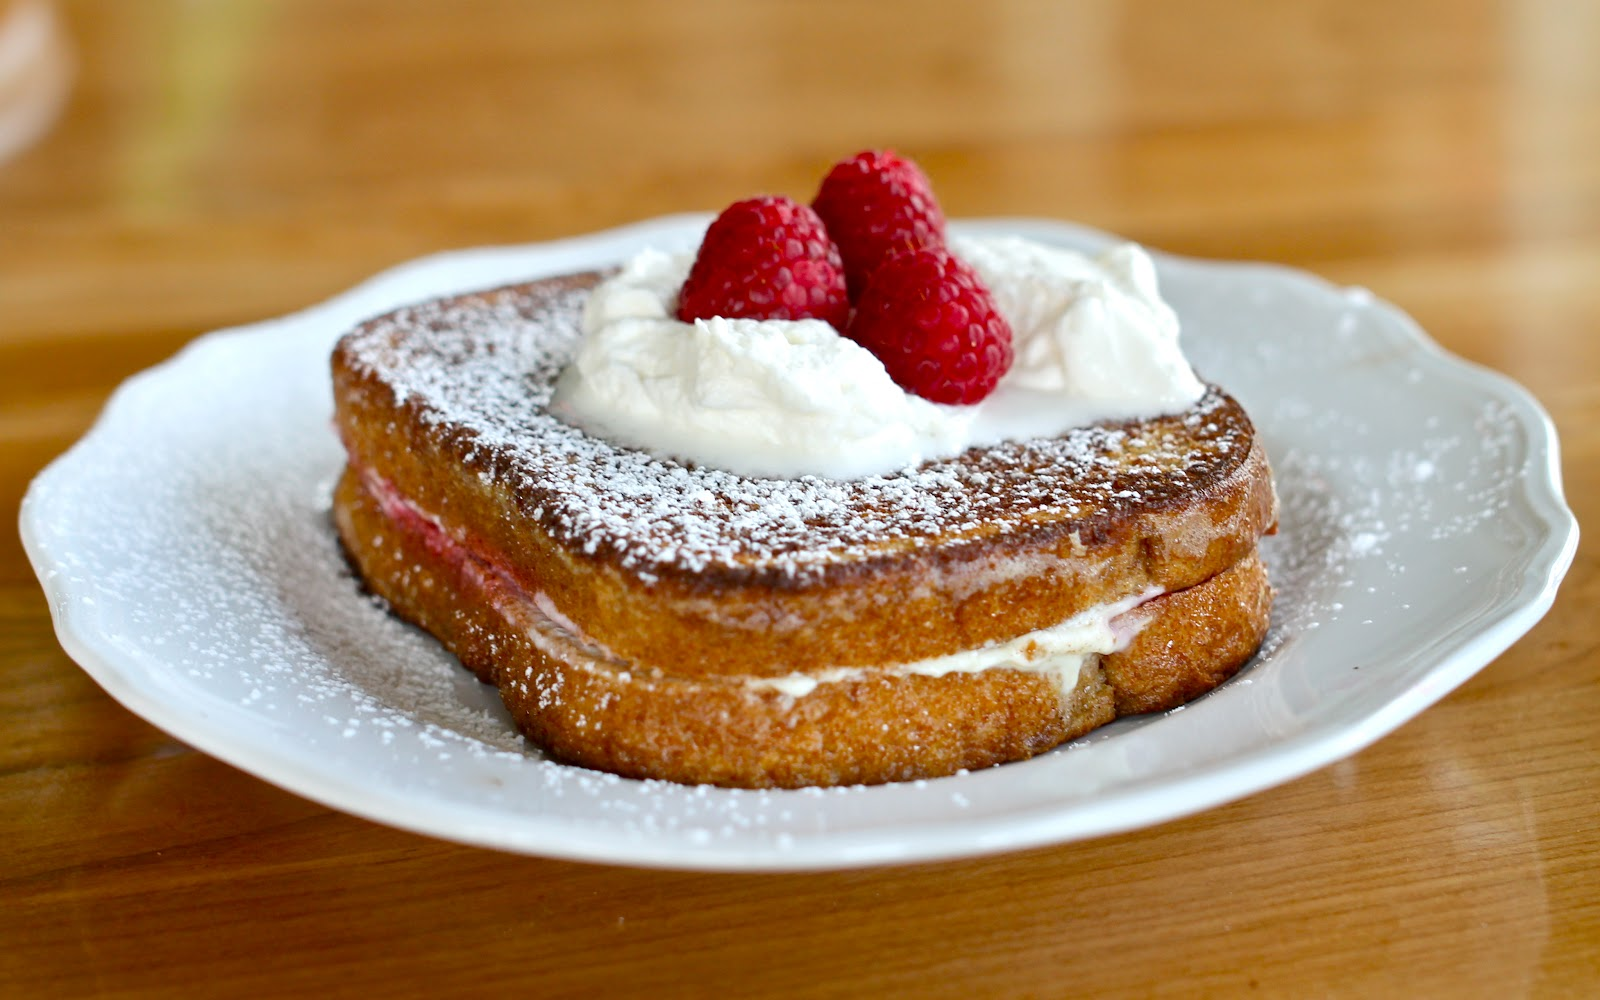 Yammie's Noshery: Raspberry Cheesecake Stuffed French Toast